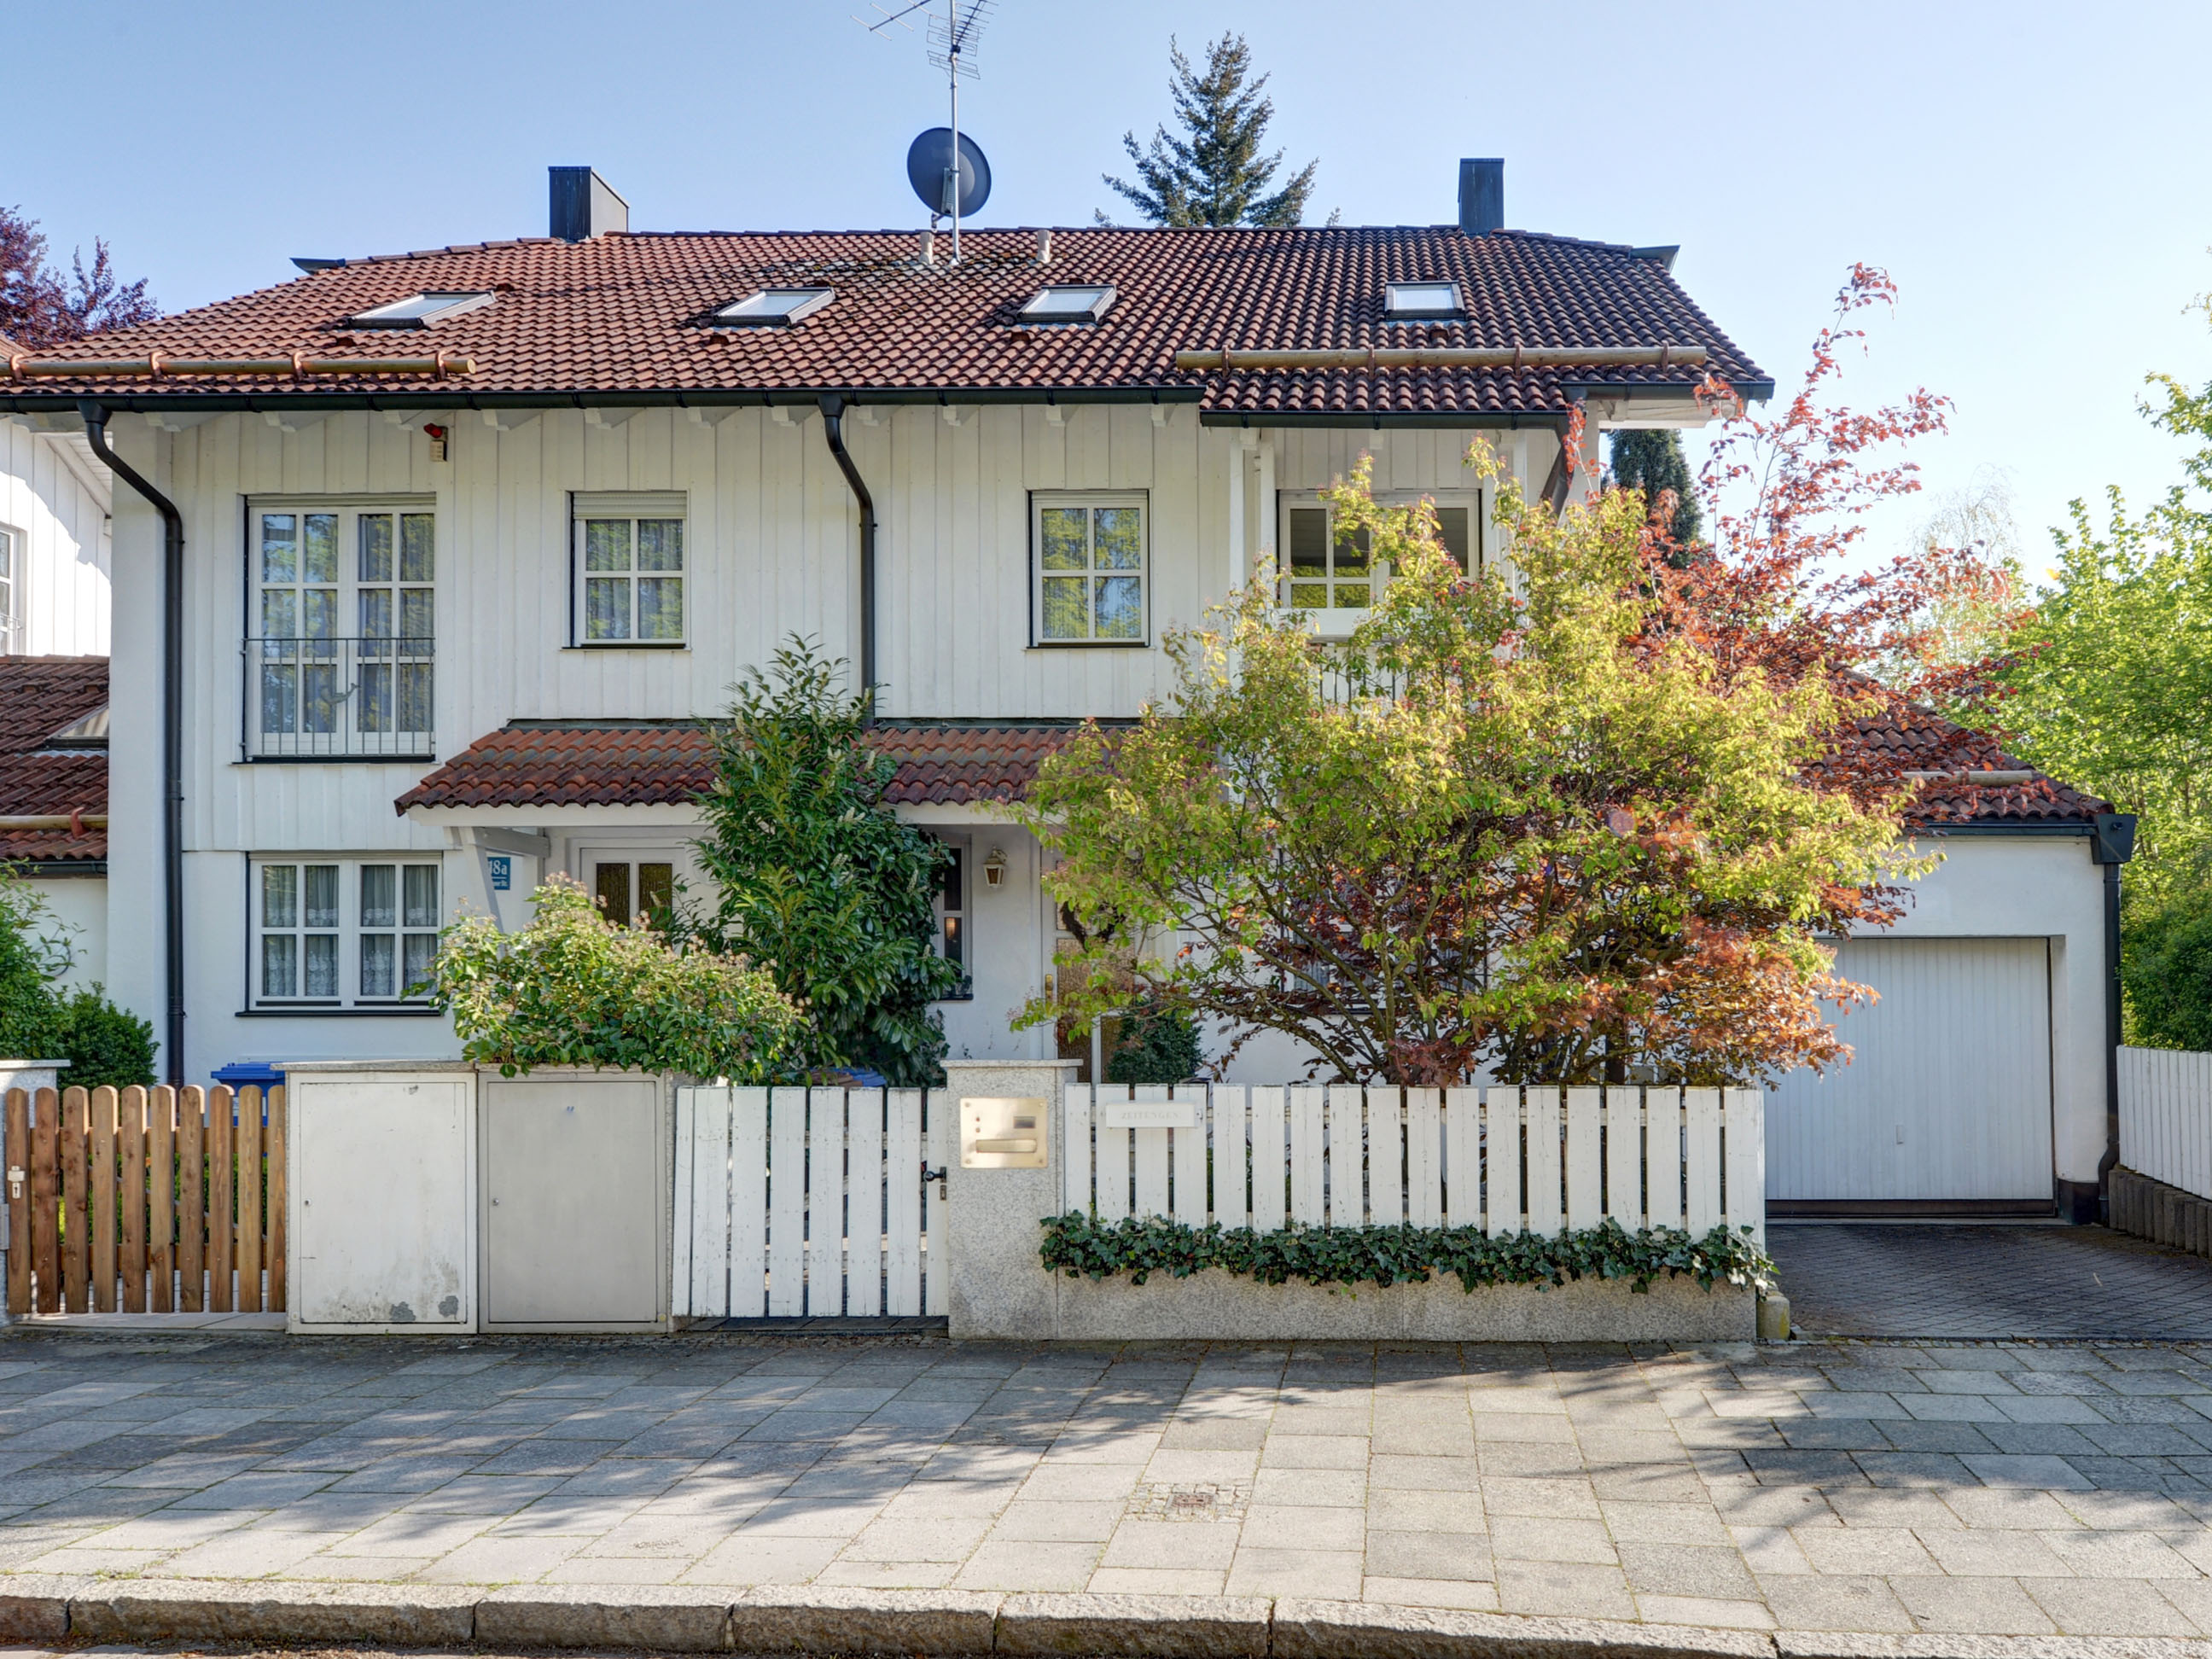 Property of the week - South of Munich